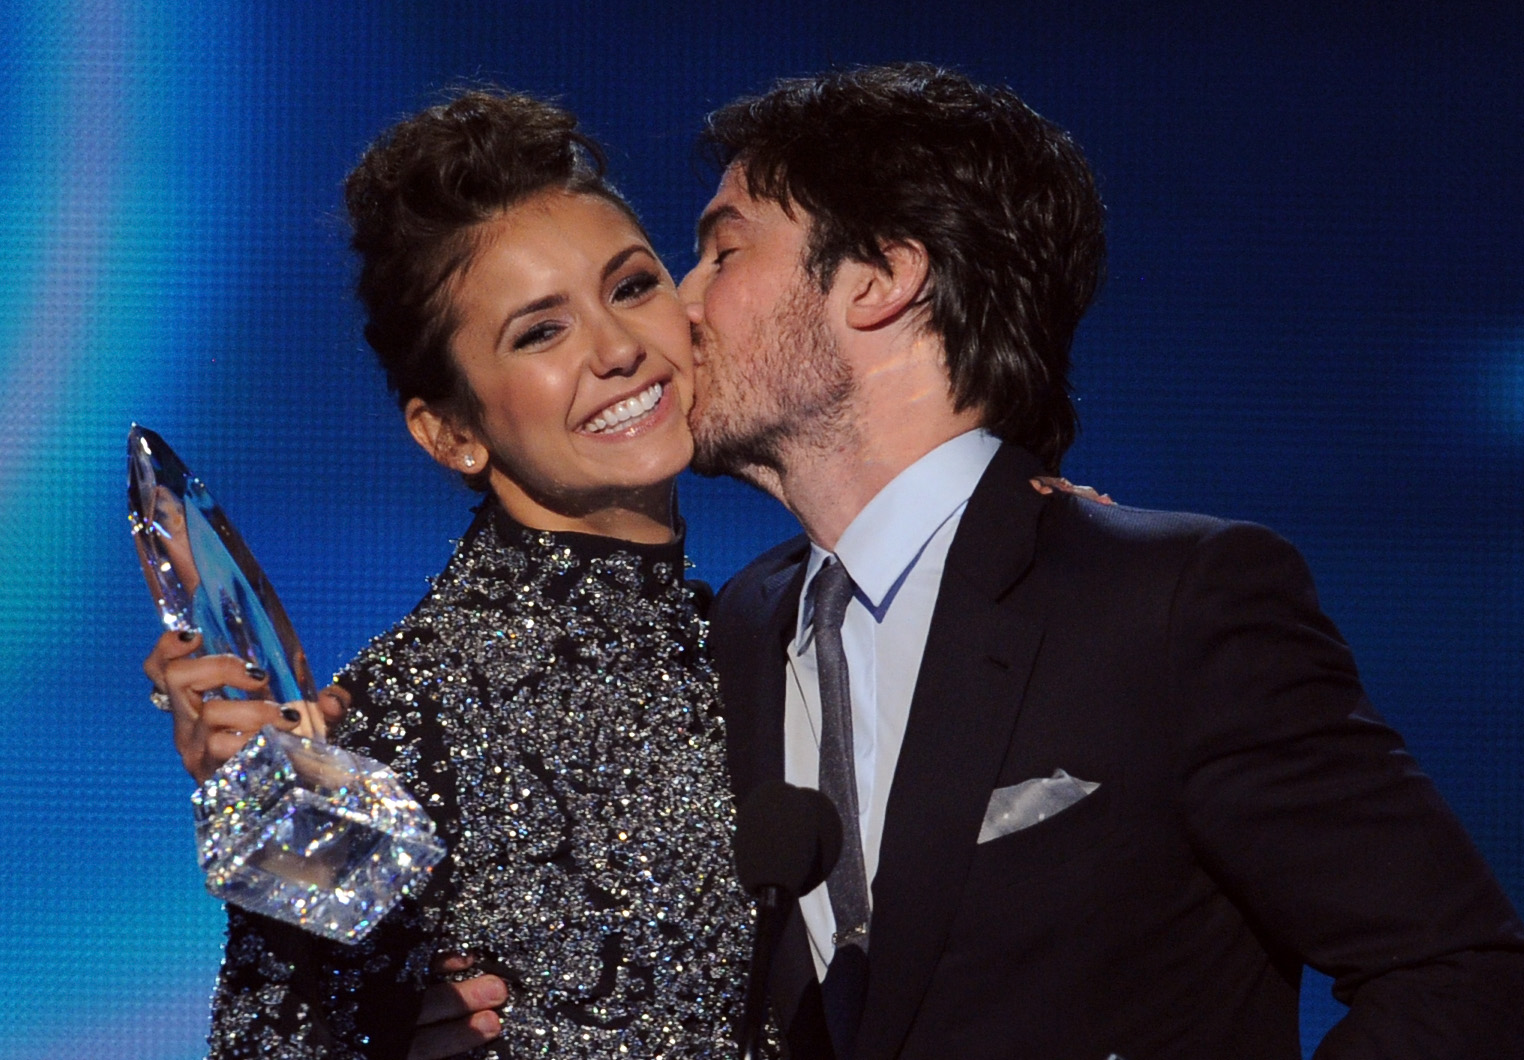 ian somerhalder and nina dobrev back together and dating 2014 Ian somerhalder and nikki reed pictured walking hand in hand speaking at the 2014 creative emmys, ian vampire diaries star nina dobrev reportedly dating.